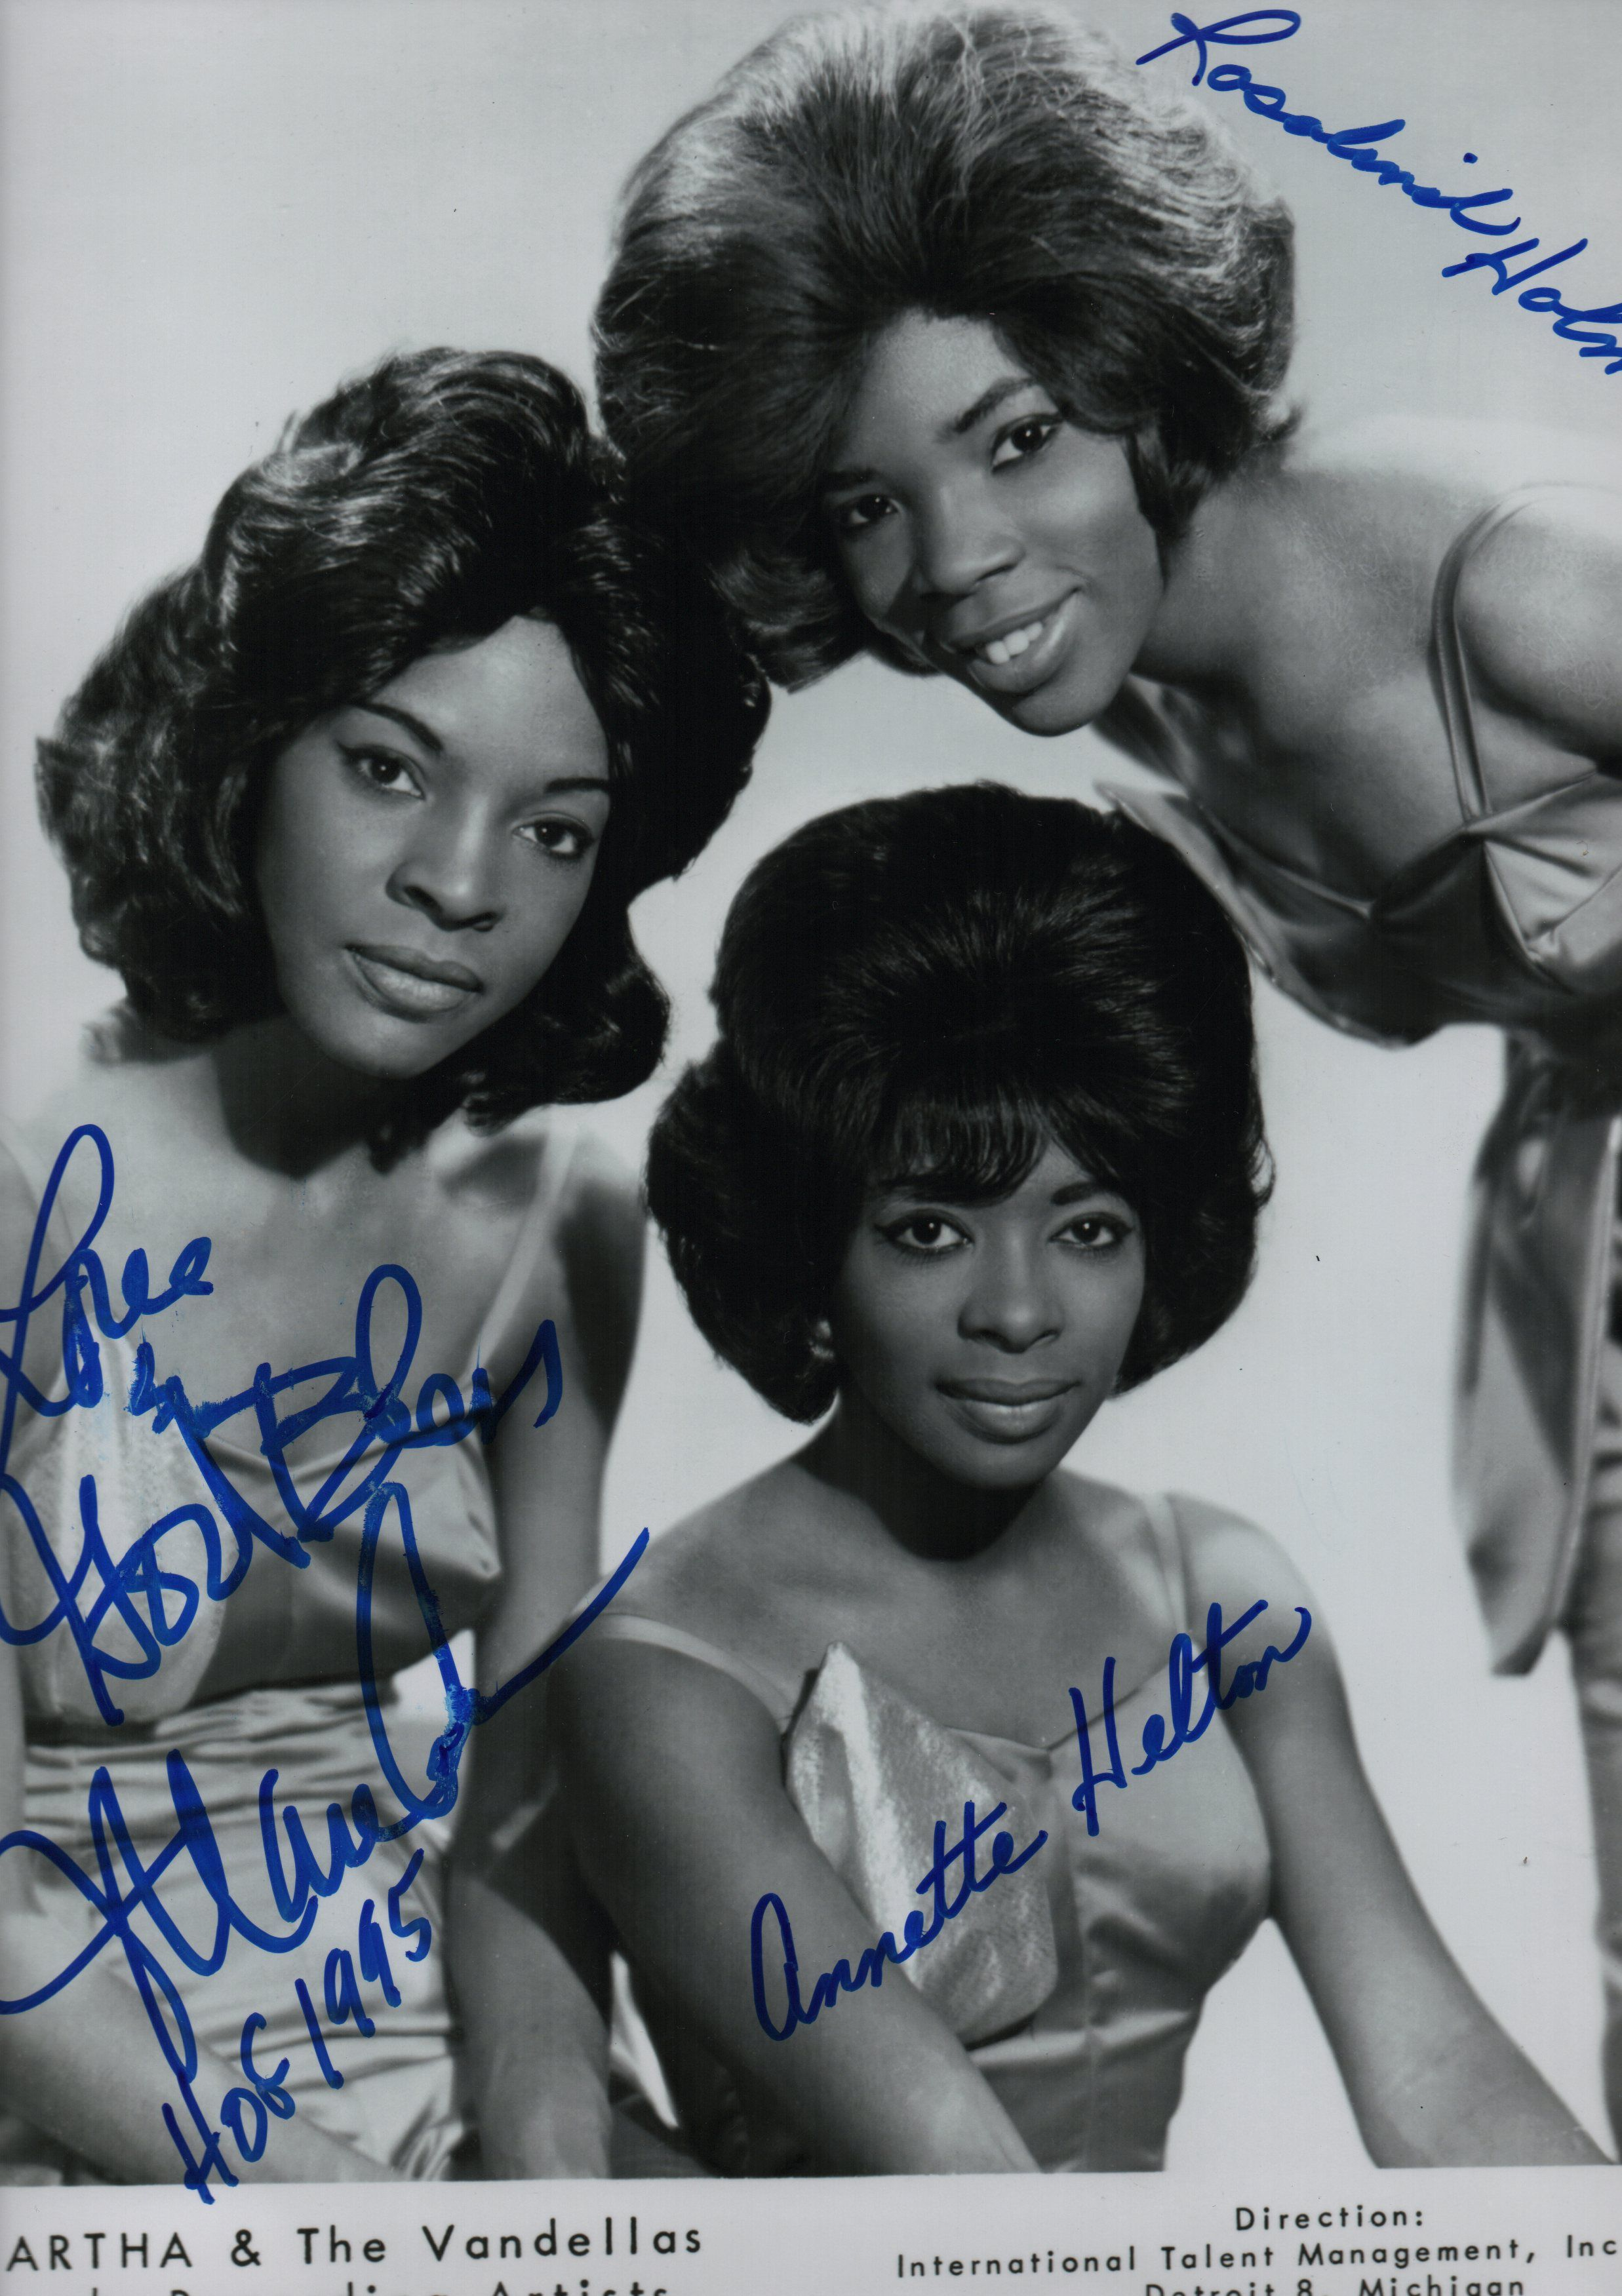 REEVES MARTHA & THE VANDELLAS Signed photograph by all